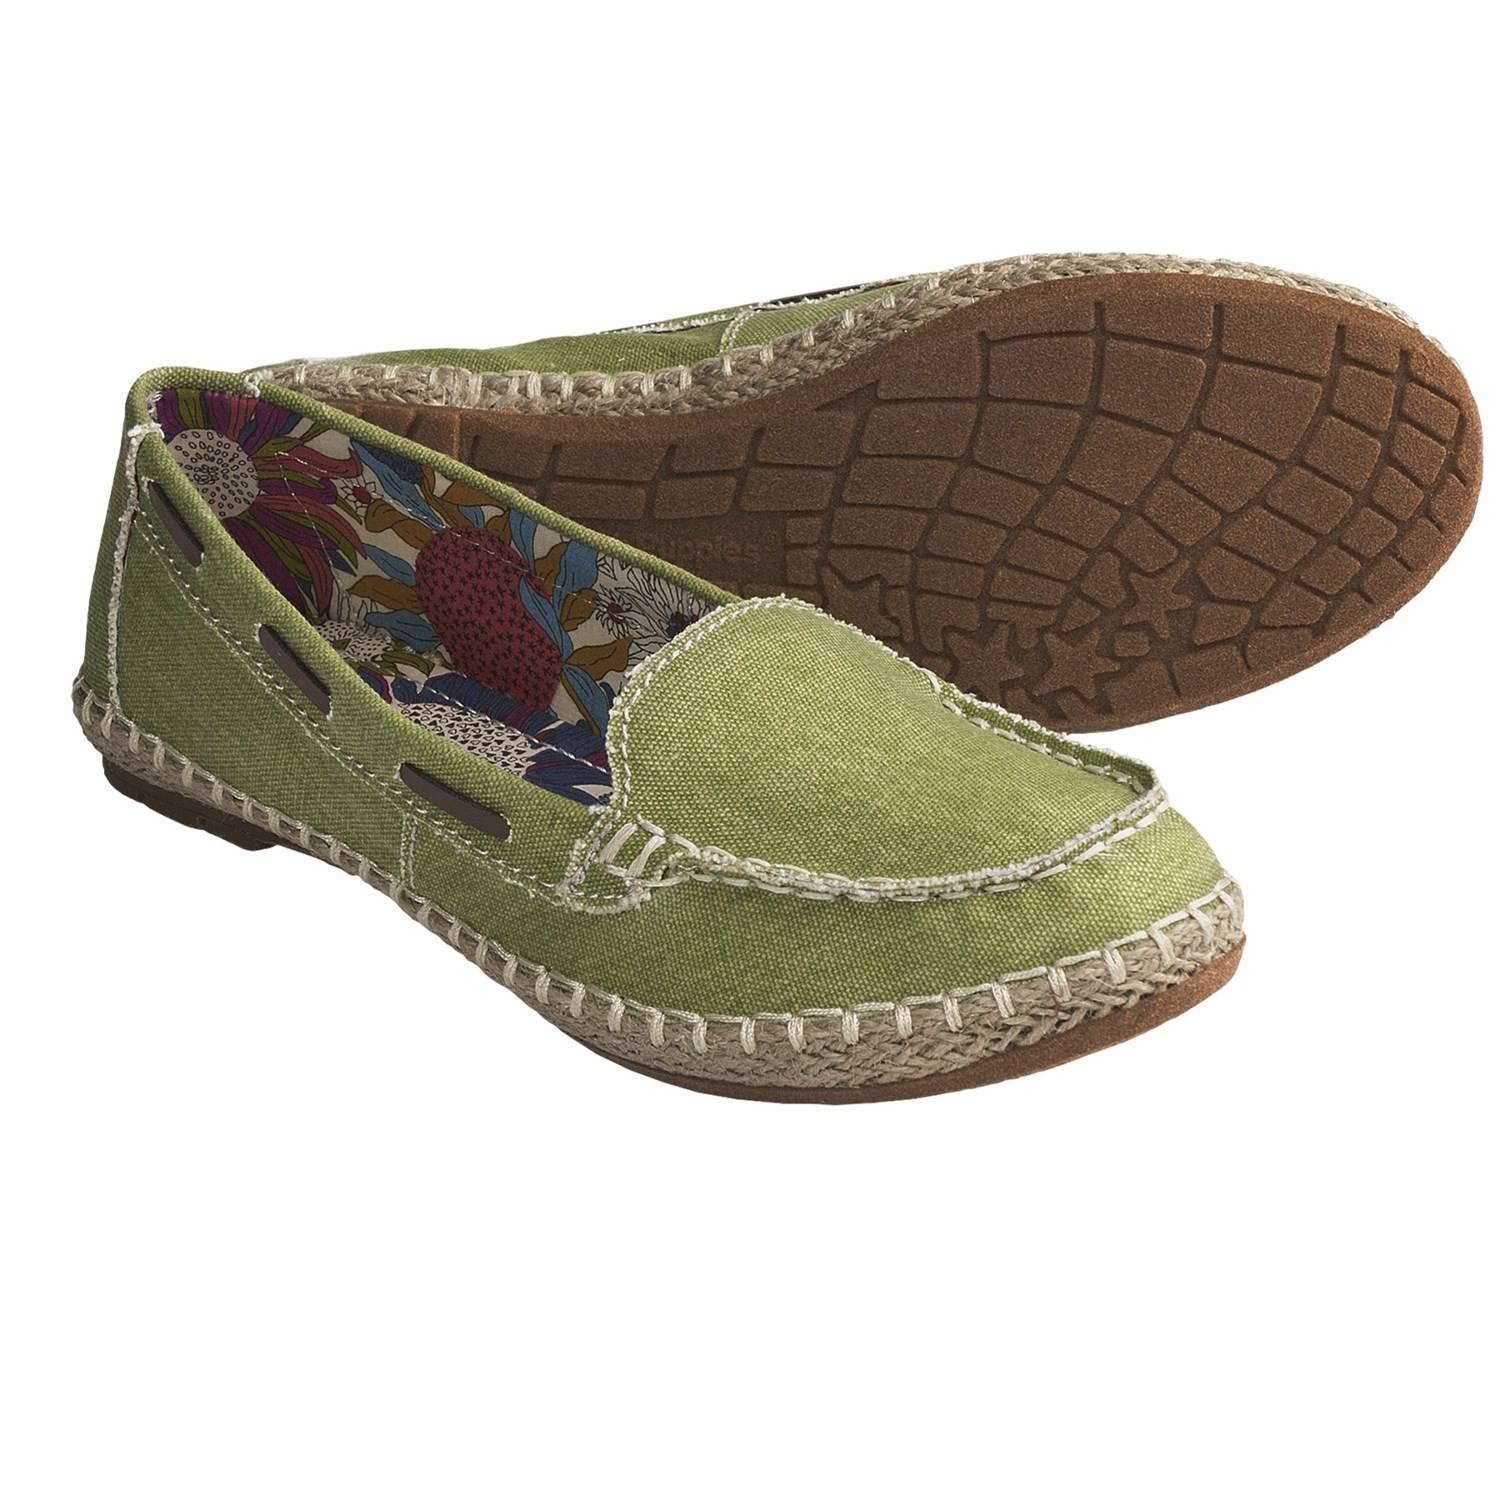 slip on canvas shoes for women, slip on canvas shoes for women